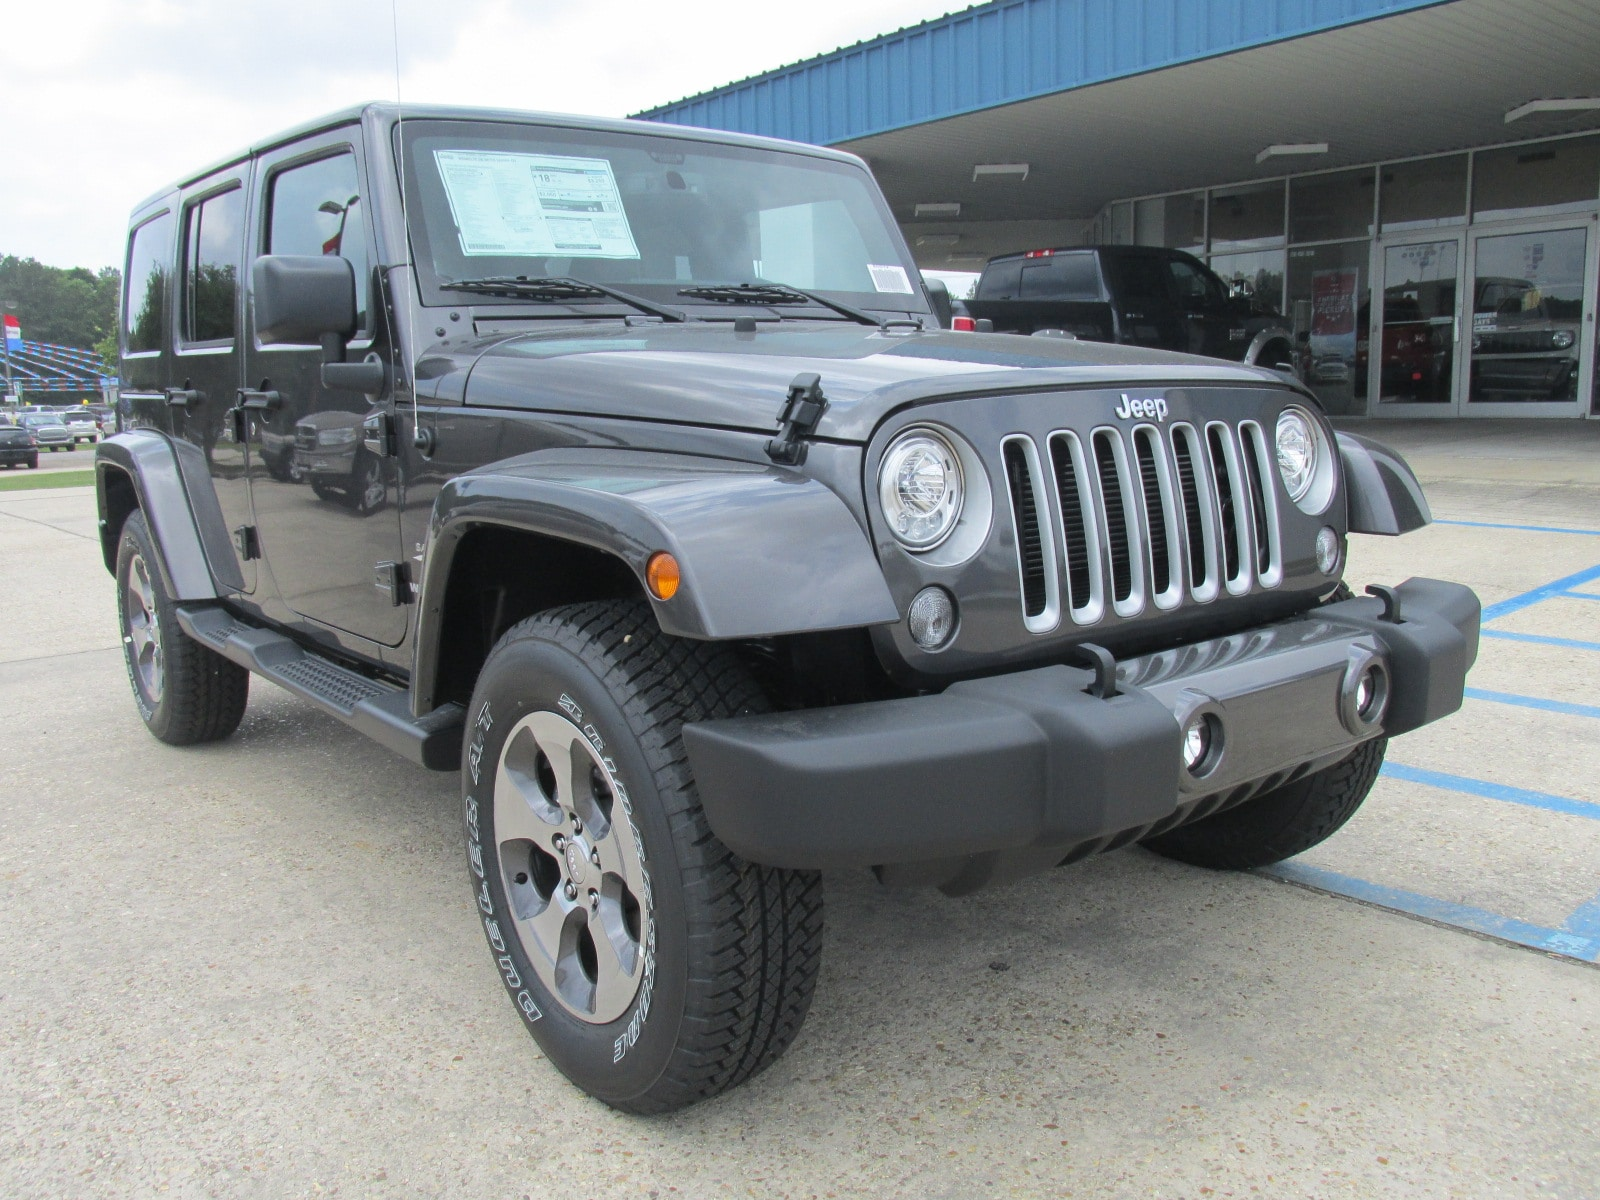 Used jeeps for sale in baton rouge la - 2017 Jeep Wrangler Unlimited Sahara 4x4 For Sale In Hammond La And Serving Baton Rouge Stock 95415